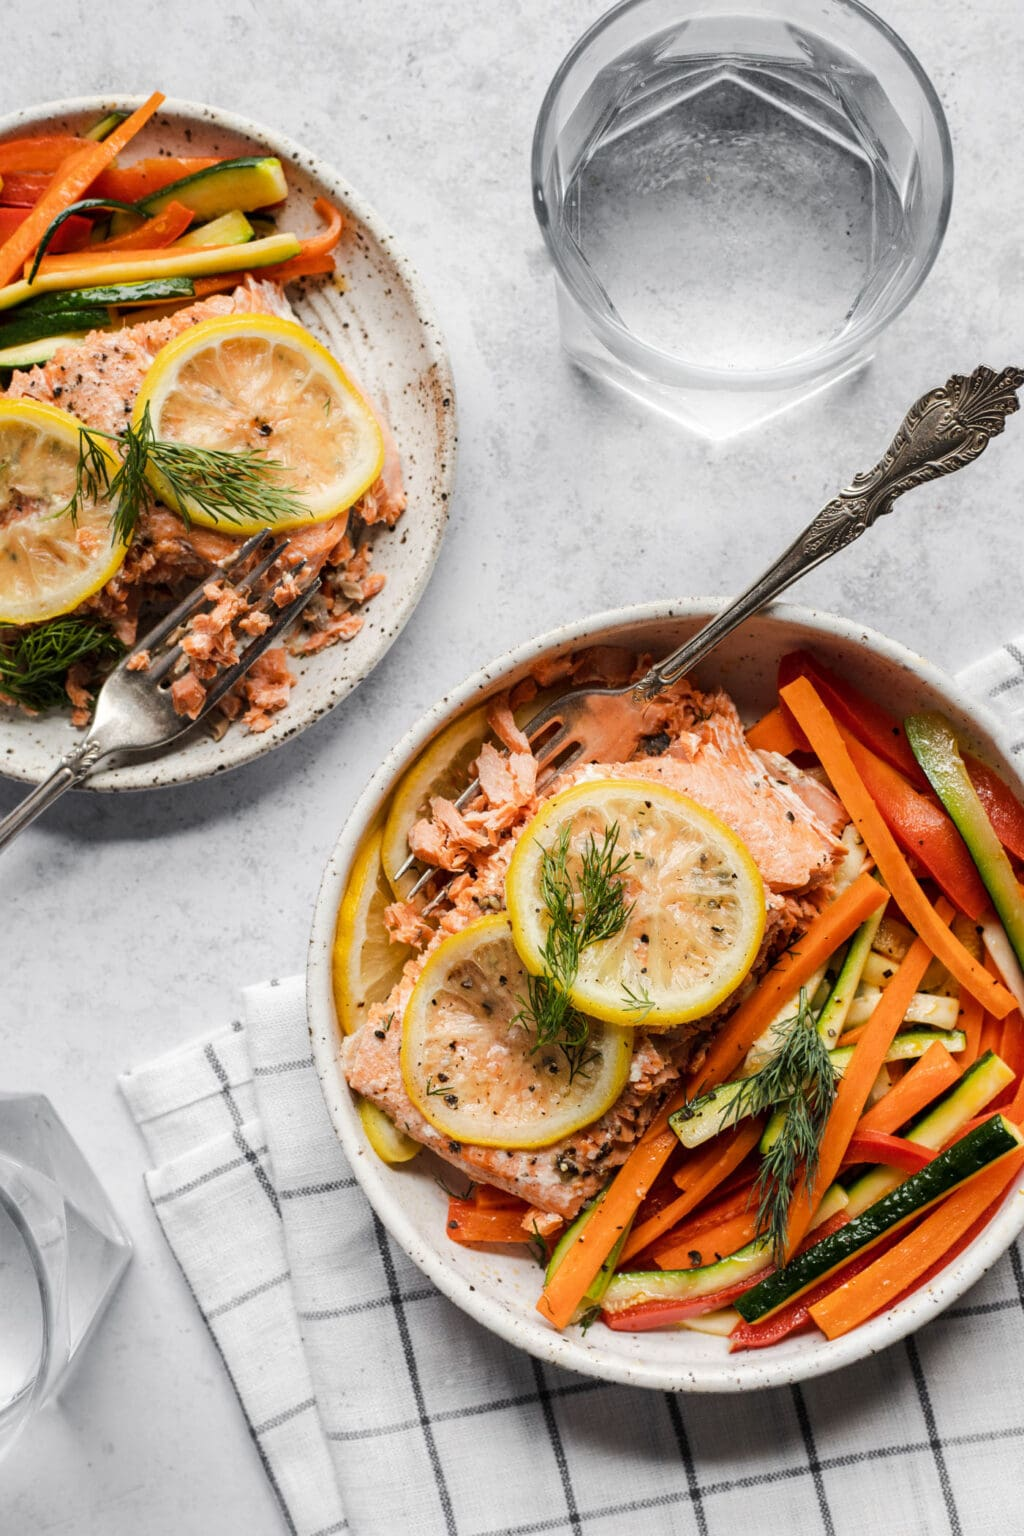 Two white plates of salmon with lemon slices and vegetables on a gray background.